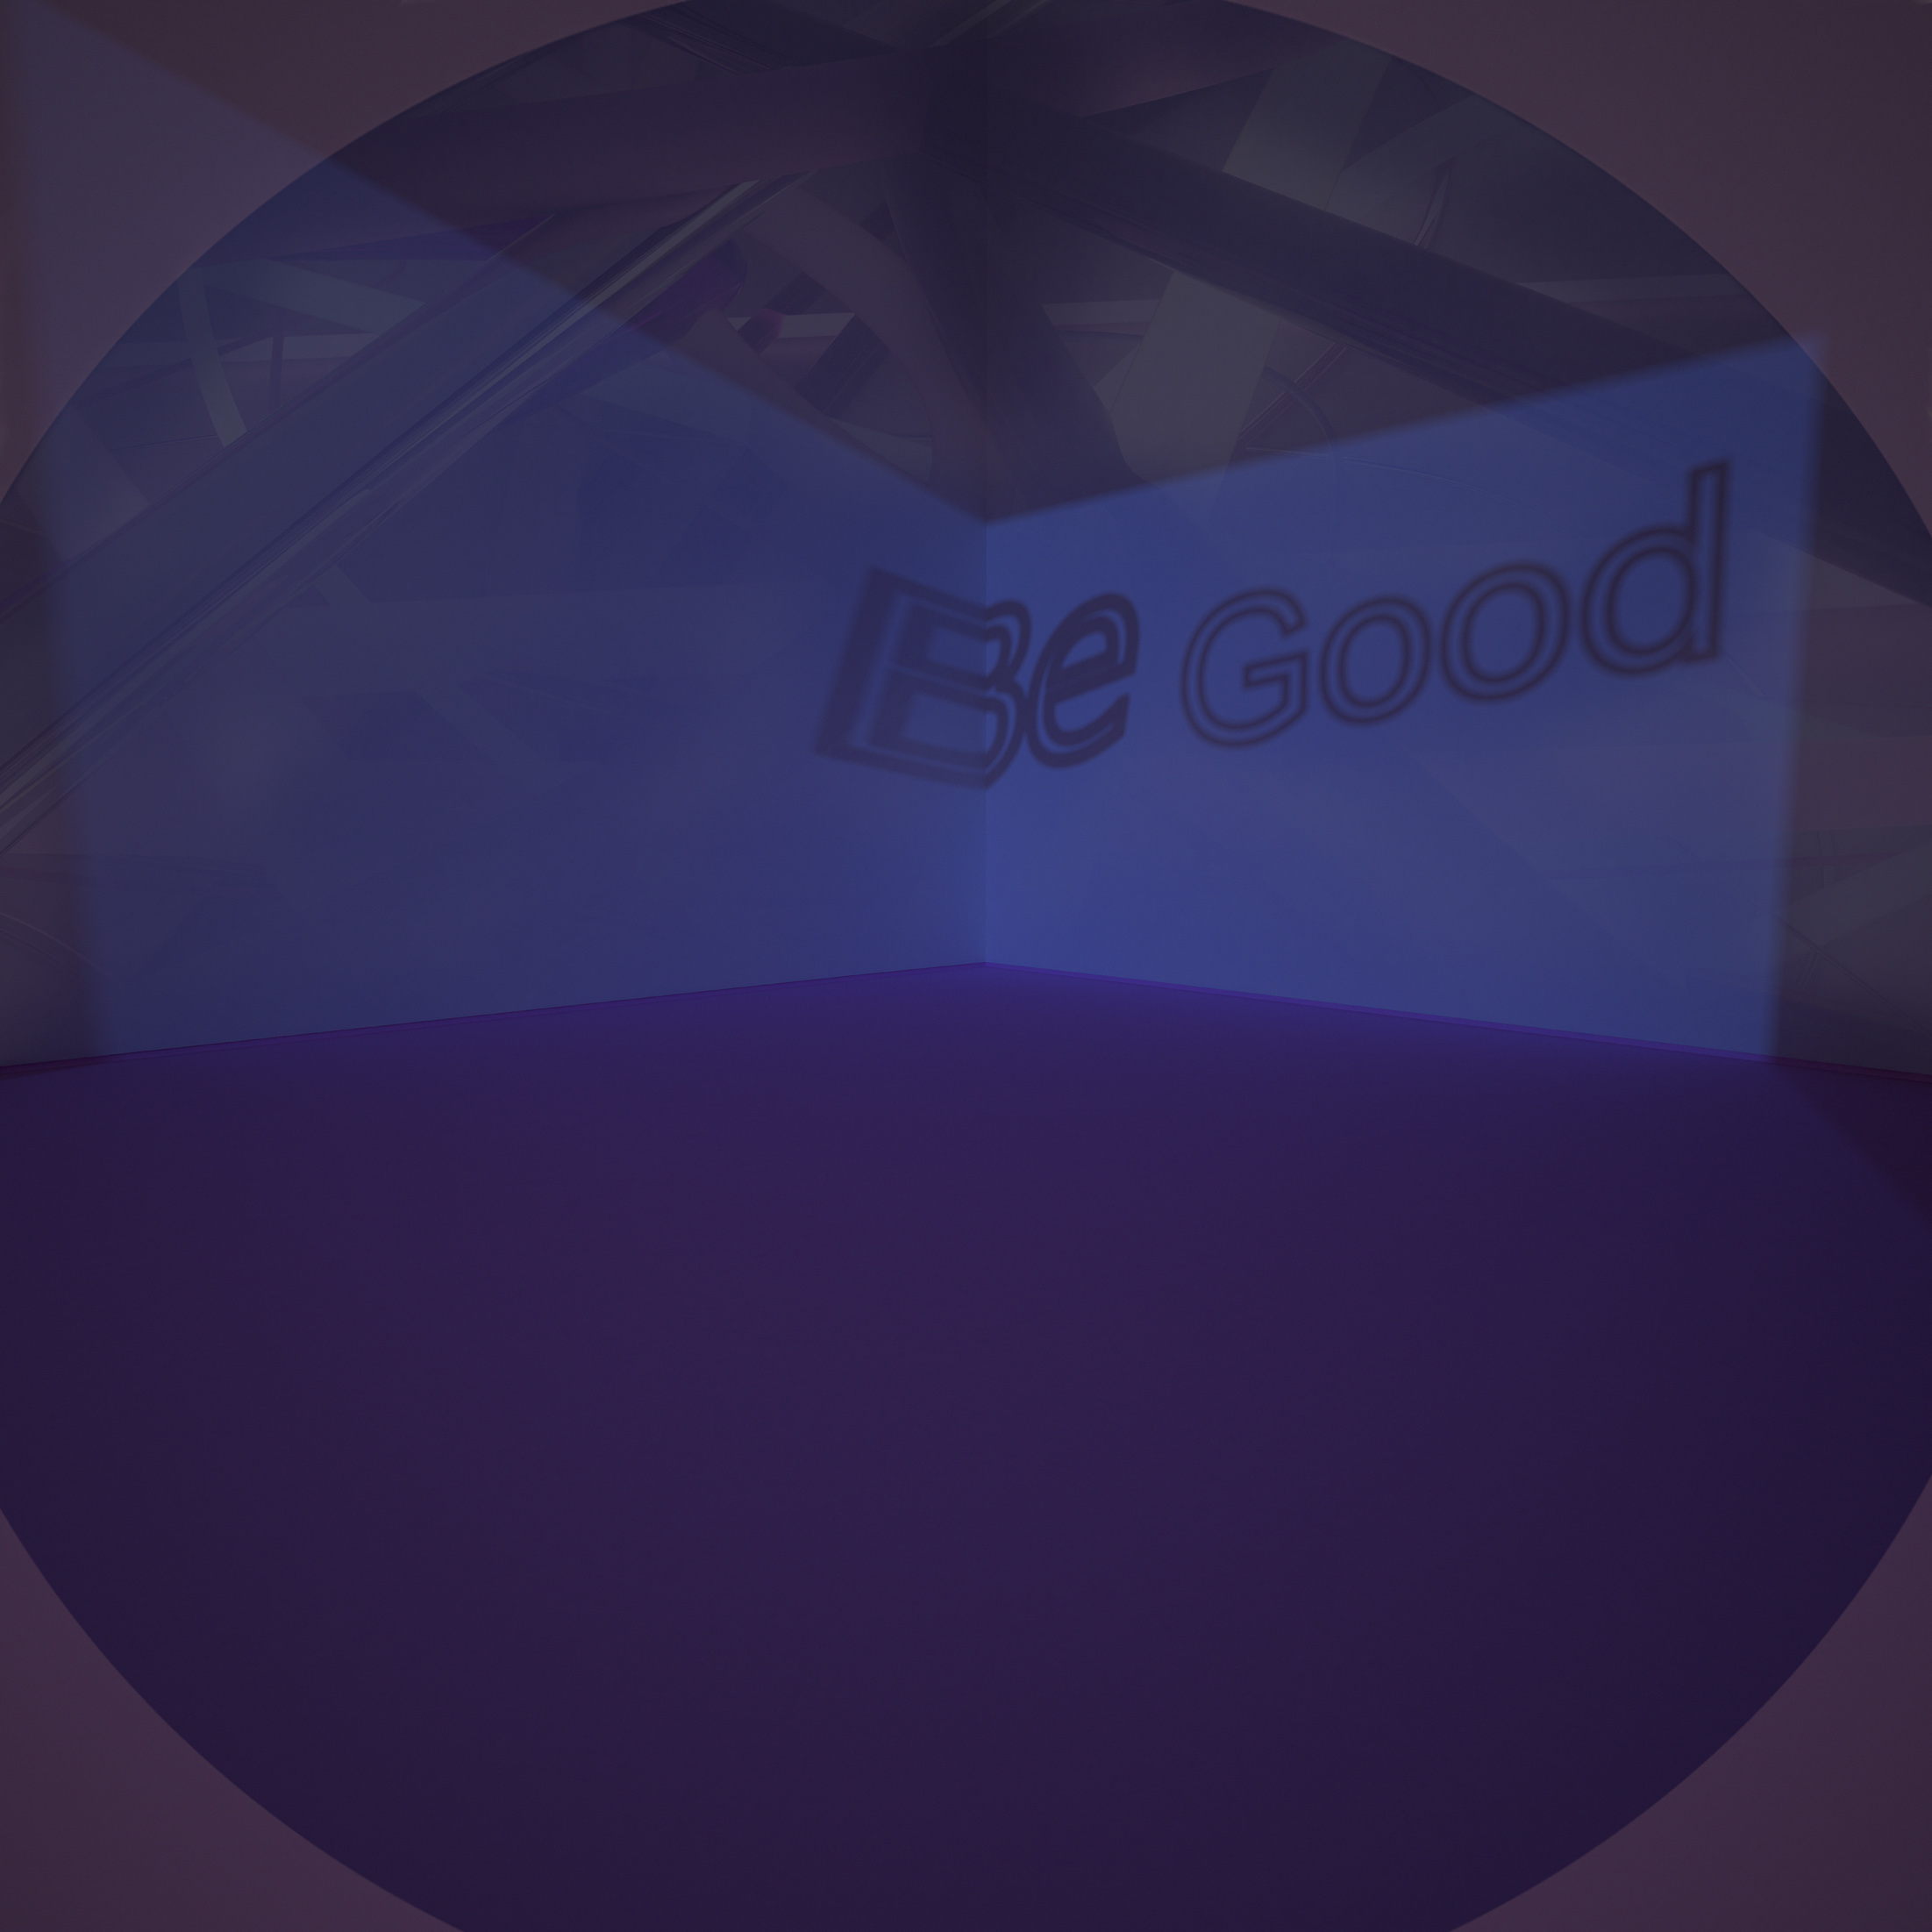 be good_with_shadow_home_night_ADJUSTED.jpg